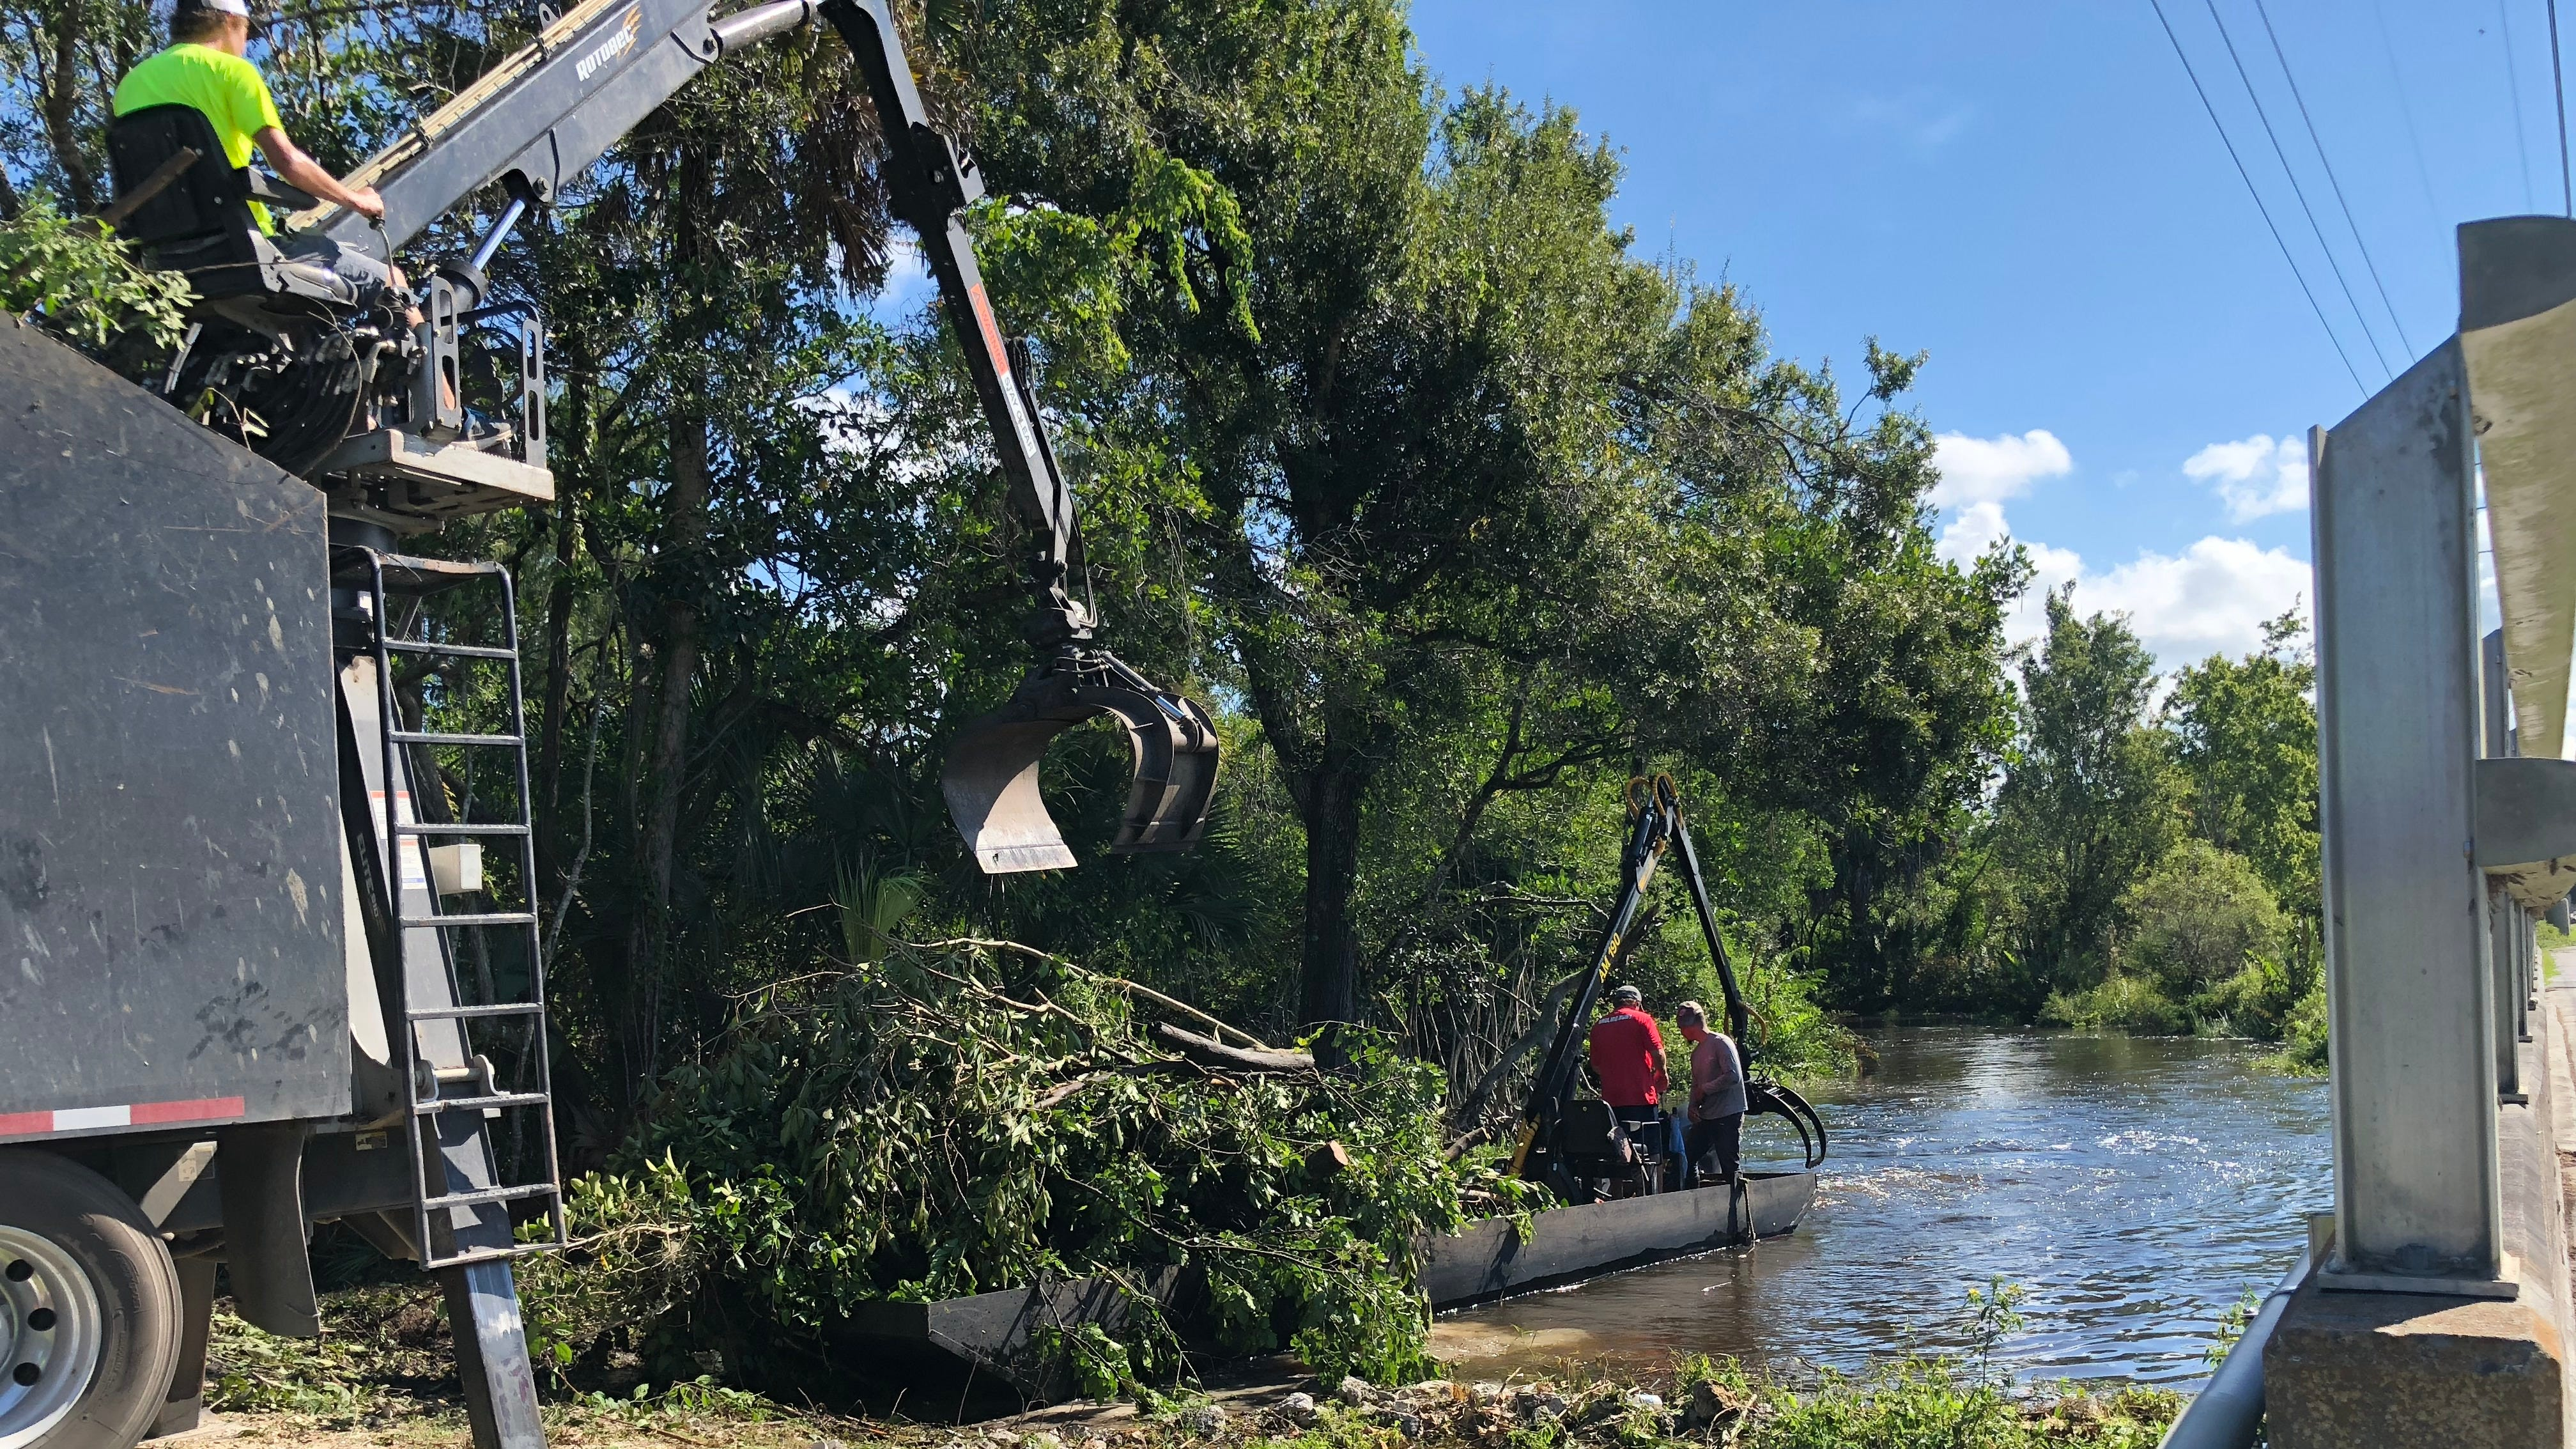 The cleanup will open the way for canoes and kayaks, and prevent flooding. Debris can trap more debris, creating a dam that could cause flooding.